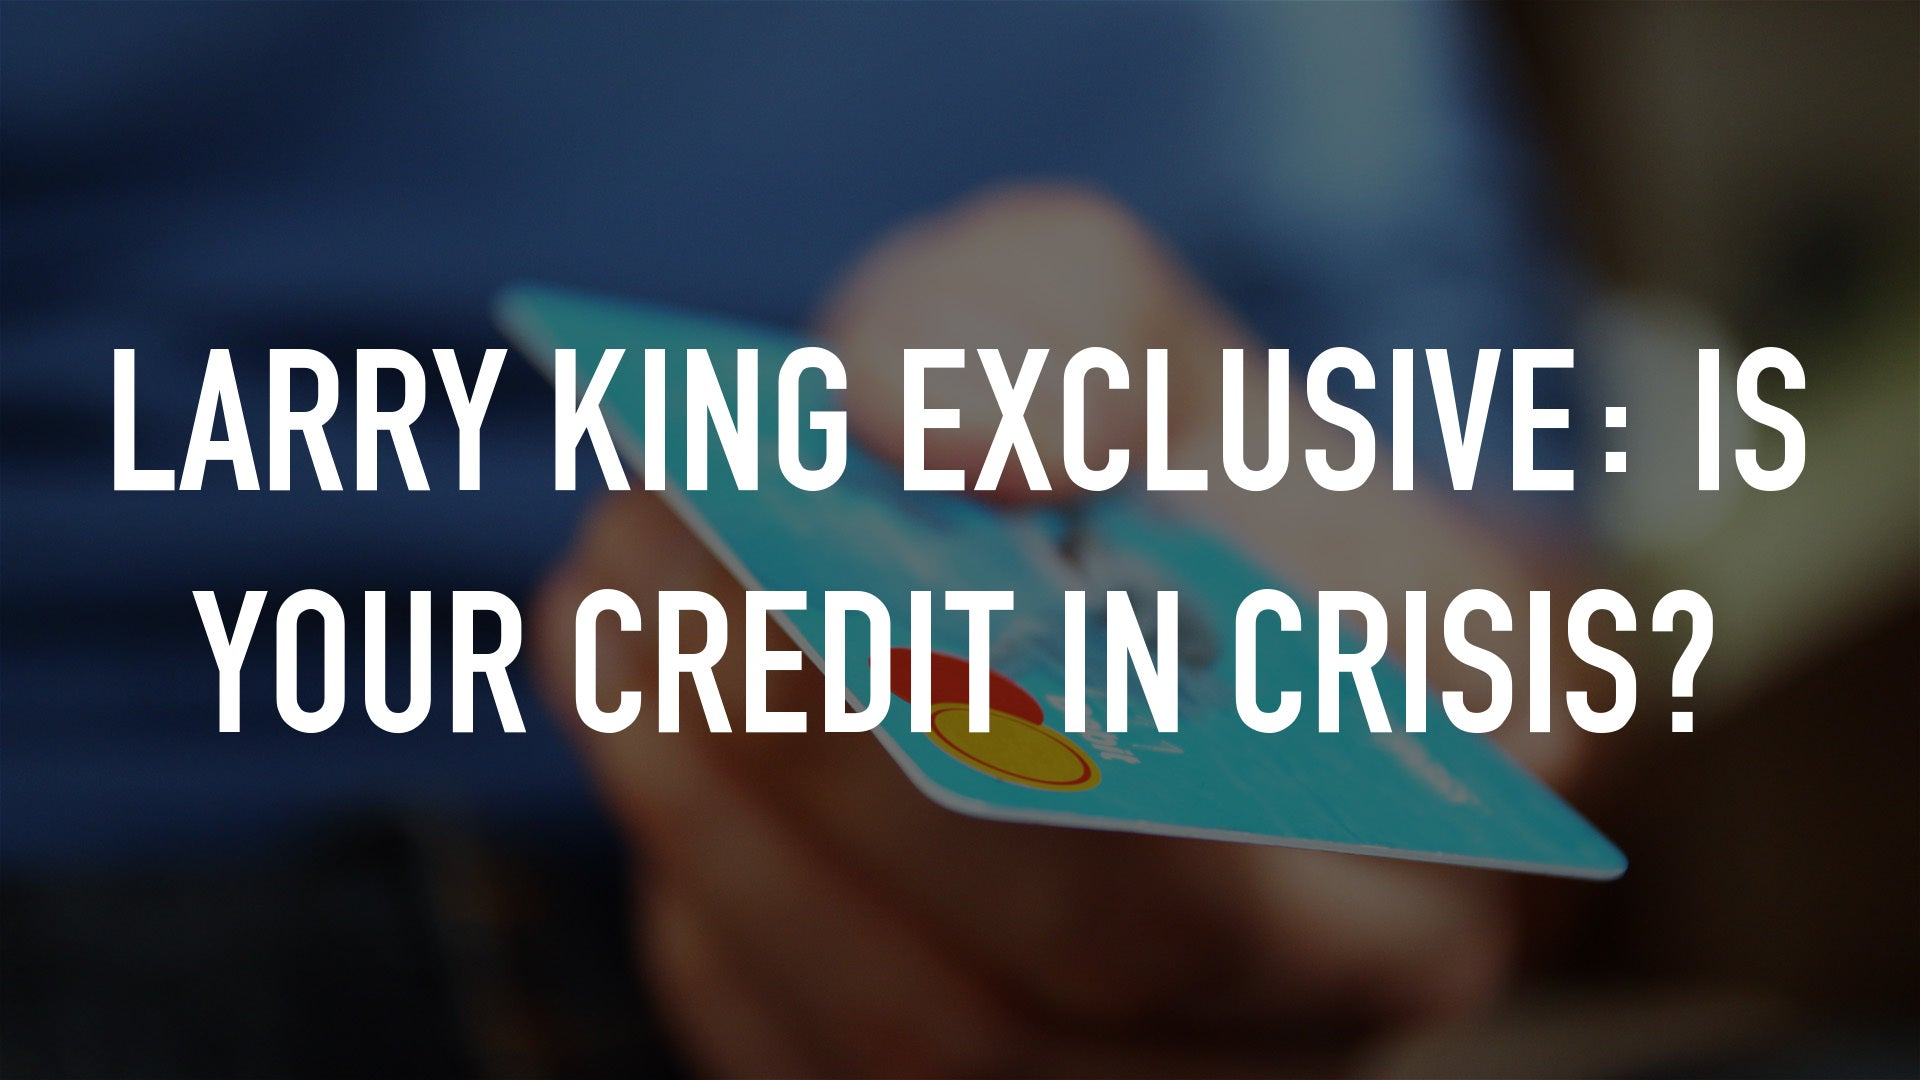 Larry King Exclusive: Is Your Credit In Crisis?